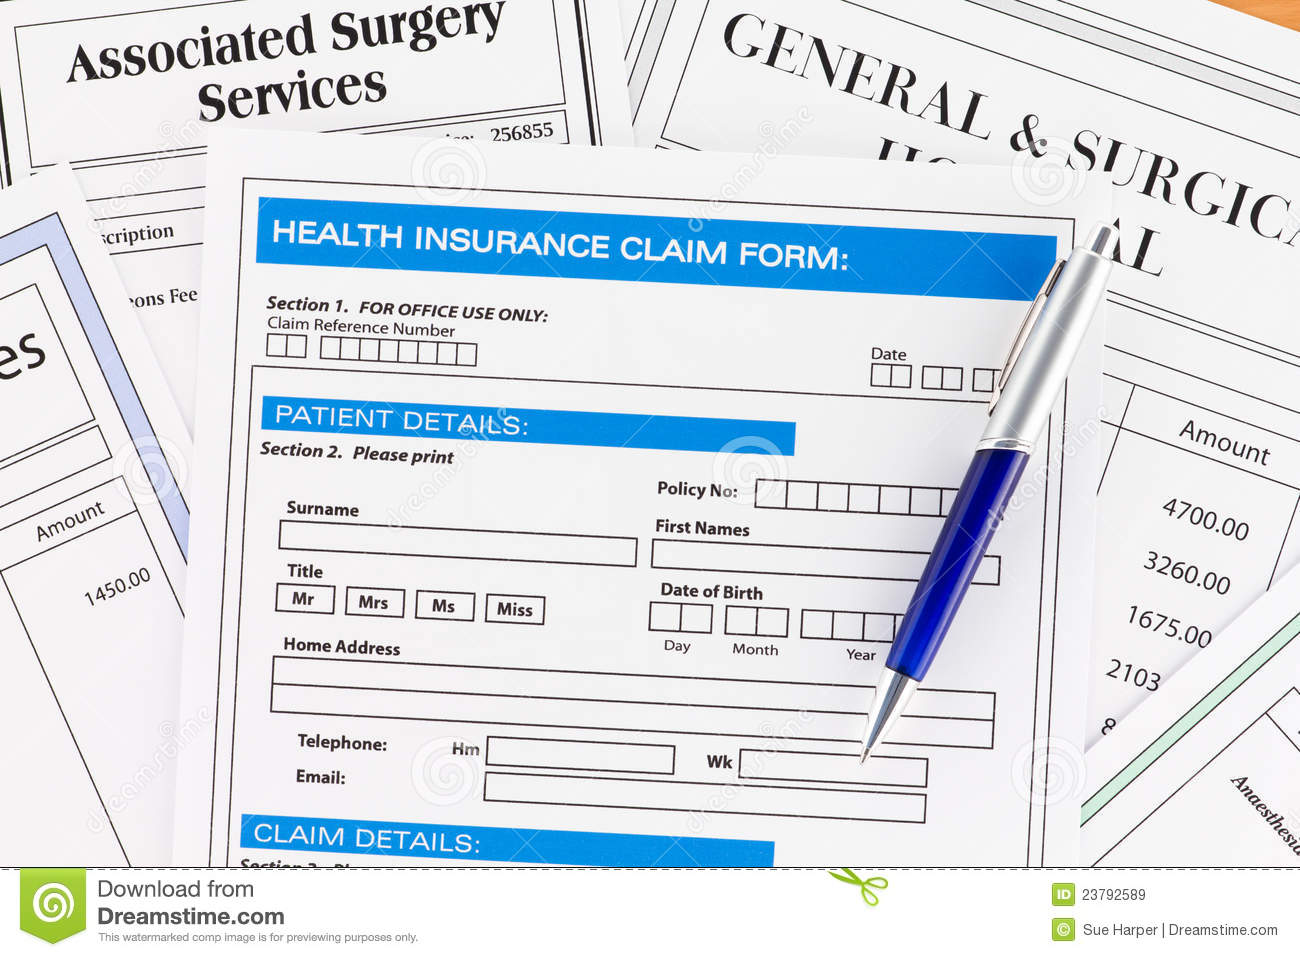 Health Insurance Claim Form With Invoices Royalty Free Stock ...